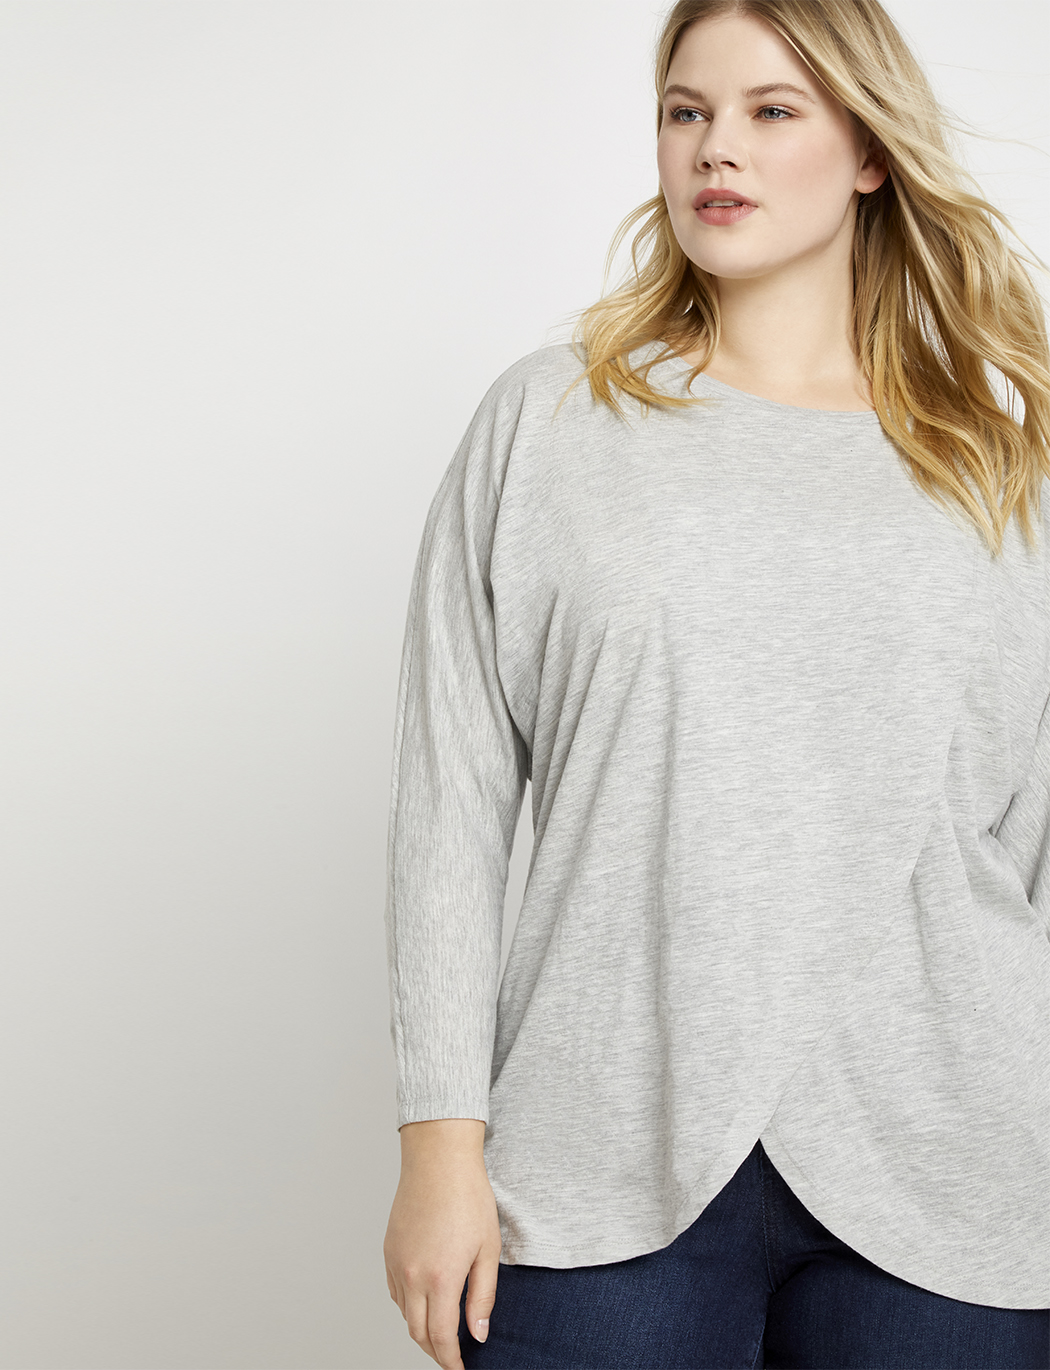 dac68810b2fb Dolman Sleeve Wrapped Tunic | Women's Plus Size Tops | ELOQUII